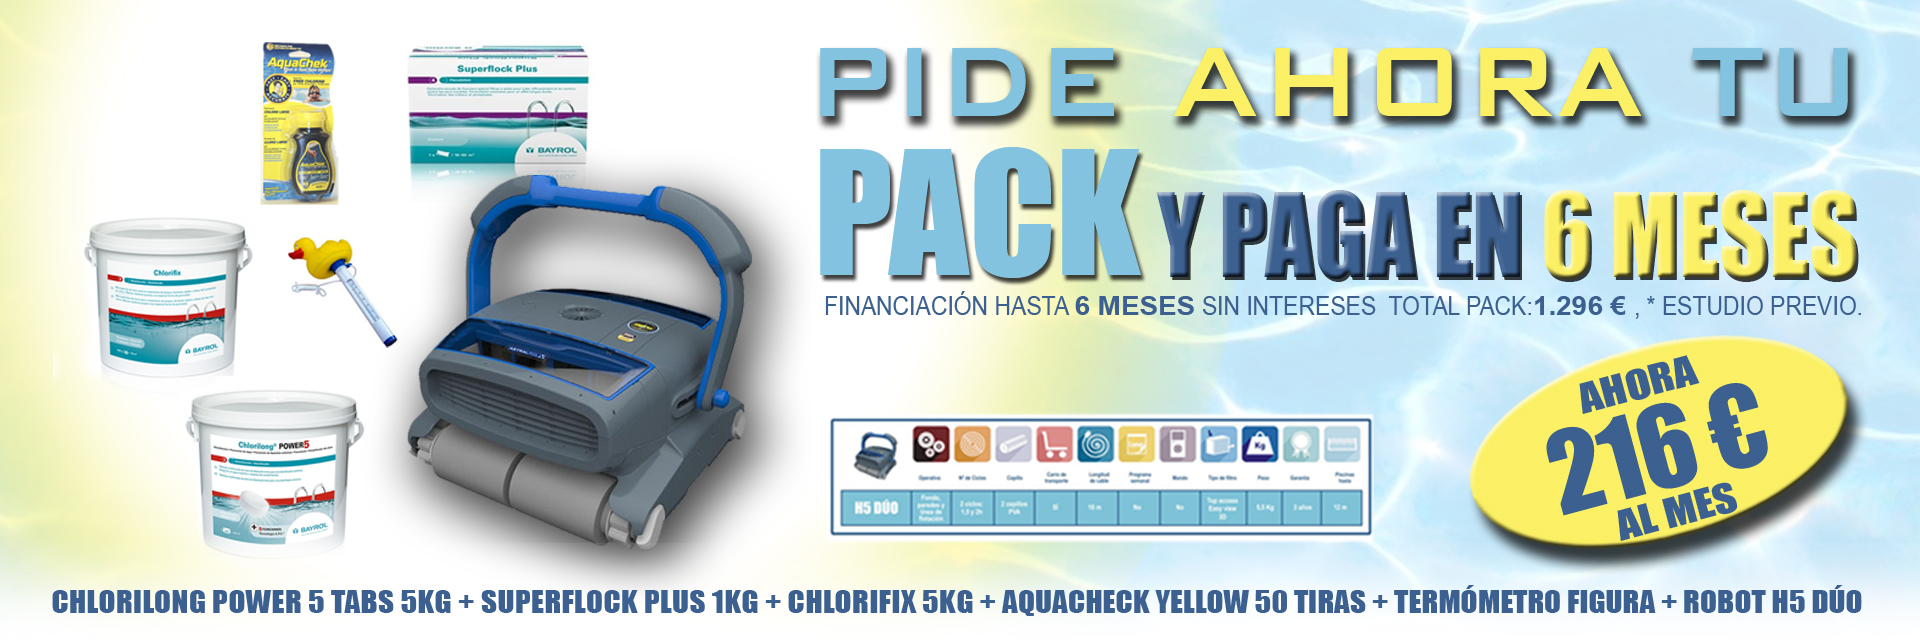 Promociones Poolplay